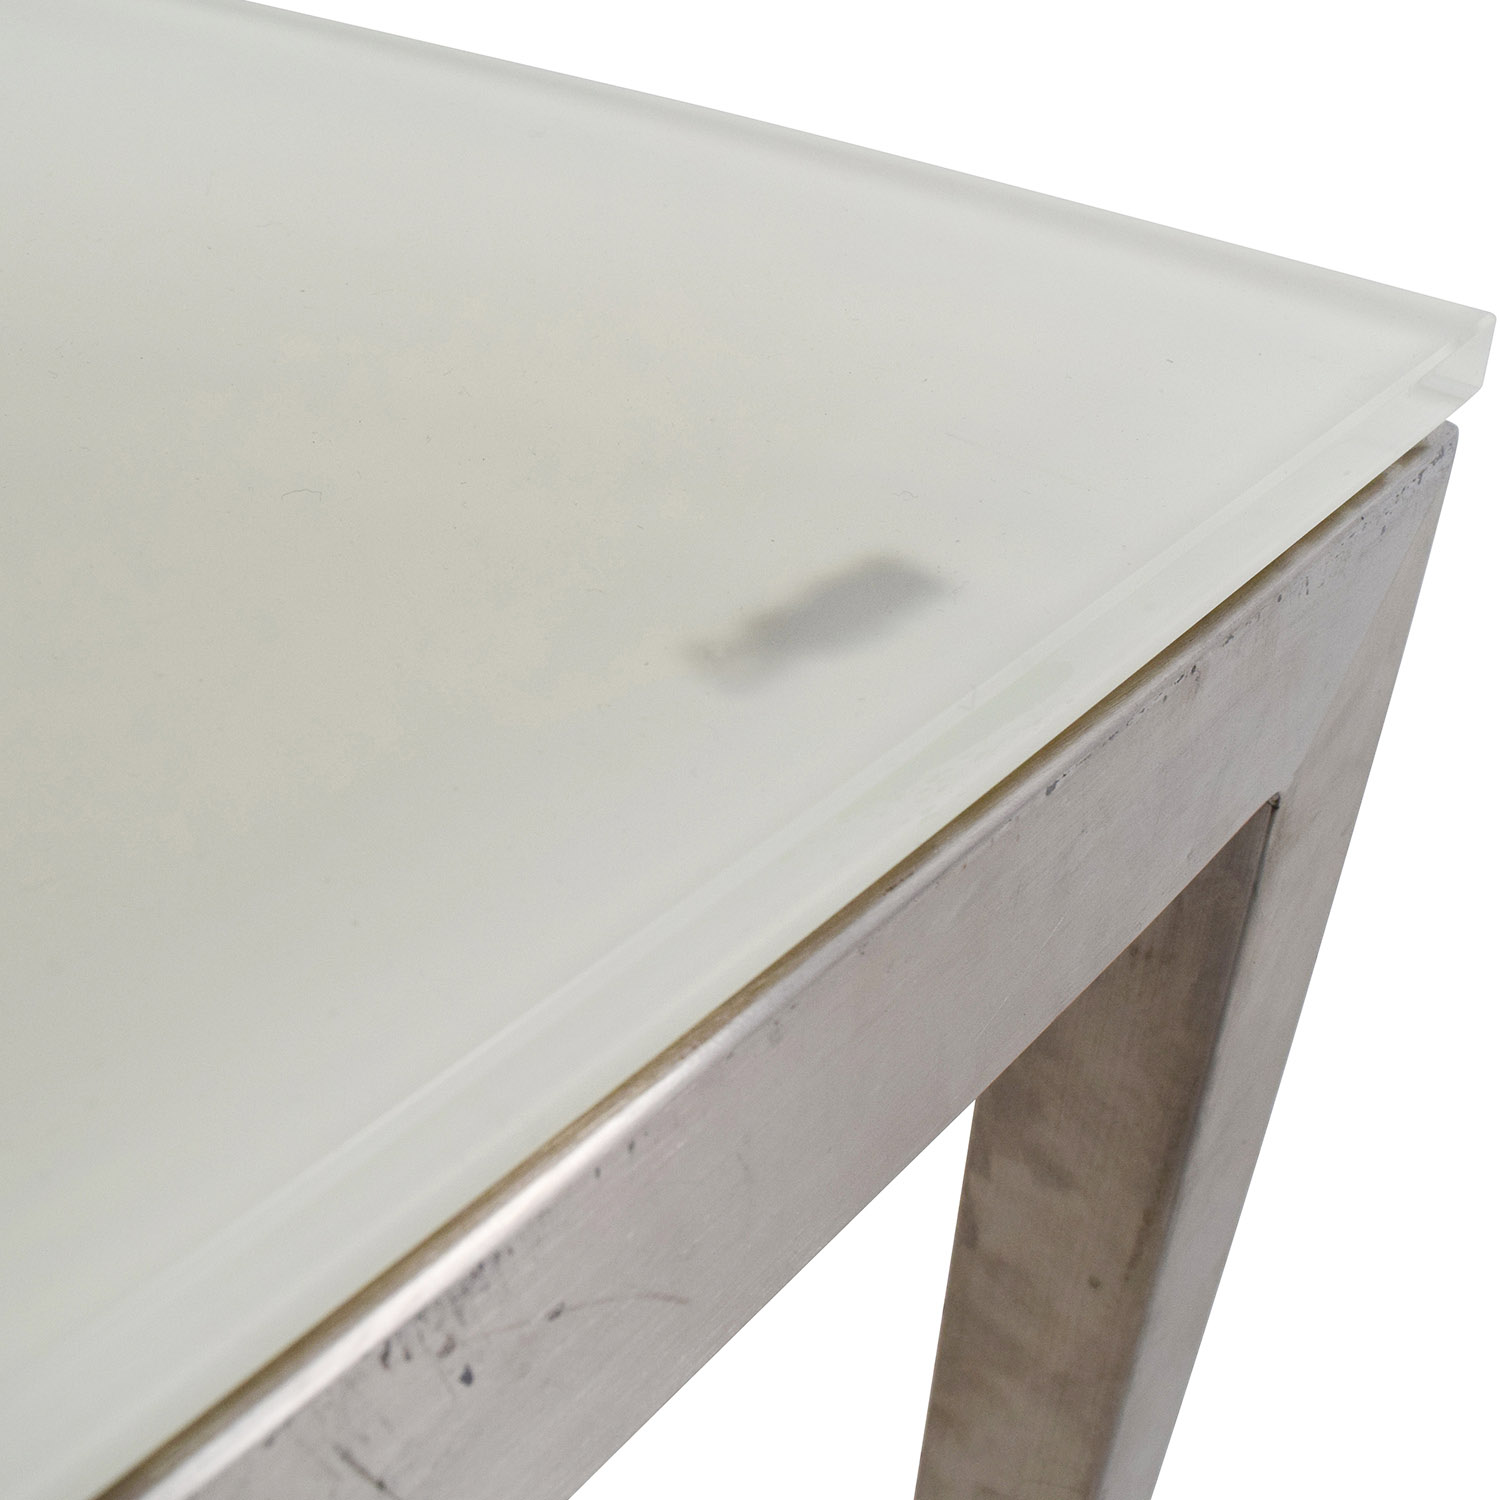 Room and Board Room & Board Portia White Glass and Stainless Steel Dining Table on sale